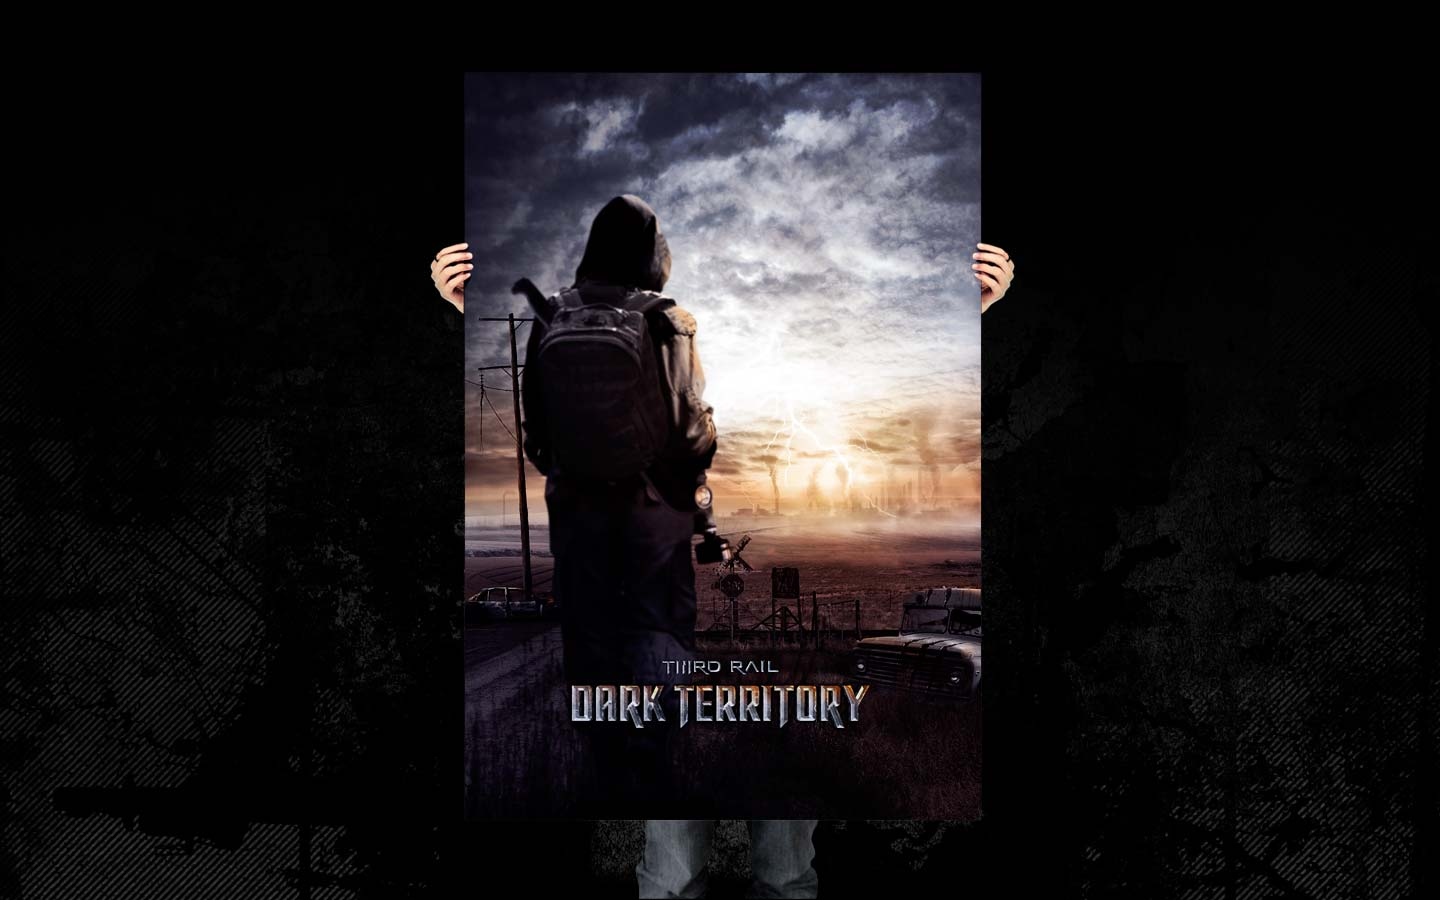 Third Rail - Dark Territory -  Laurent Lemoigne - Donanubis - Don Anubis - Graphic Design - Illustration - Digital Art - DVD Cover - Dos Brain - California - US - Art - Music - Electronic - Cinema - Movie - Trailer - Movie trailer - Poster - Man - Machine - Factory - Industrial - Dark - NIN - Prometheus - I am a Legend - Book of Eli -  Gazmask - Gas Mask -  End of the World - Doomsday - Post Apocalyptic - Alternative - Underground - Geneva - Switzerland